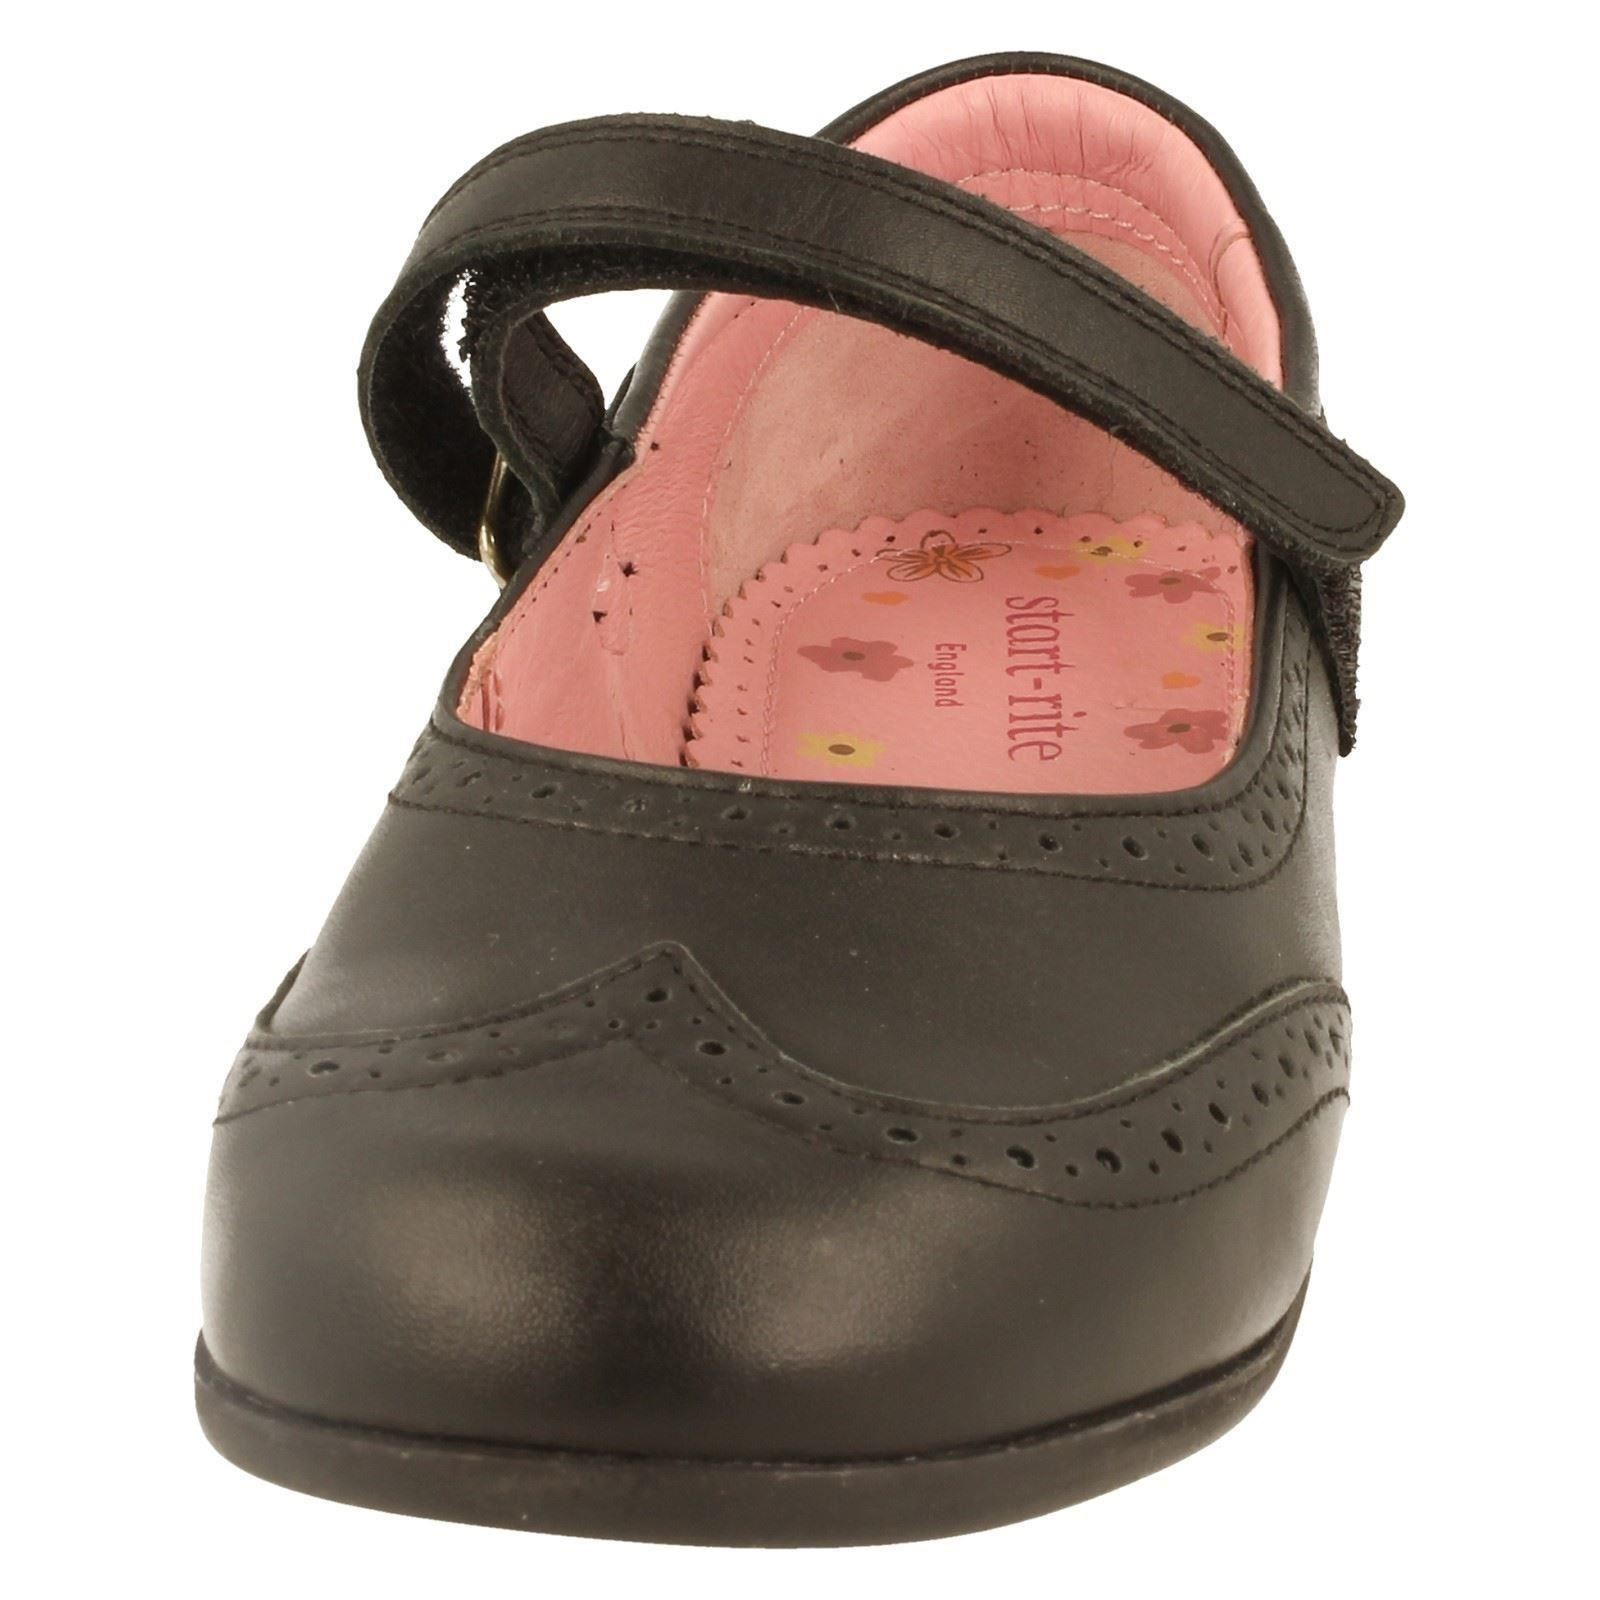 Chicas START Rite Mary Jane Zapatos Escolares, Ala-W